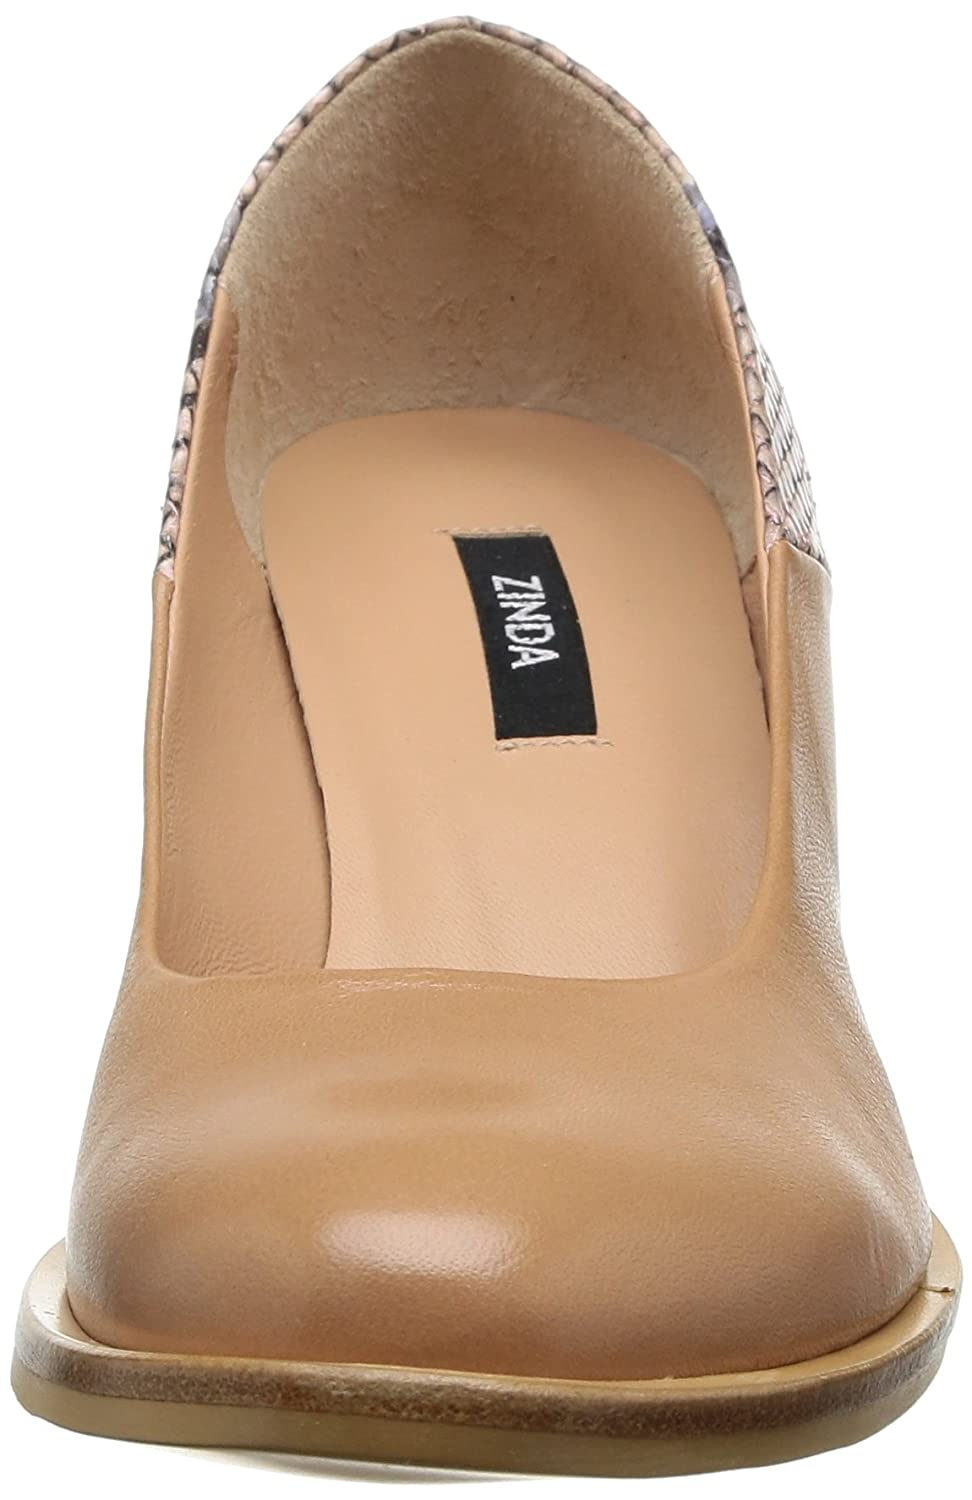 Zinda 1421, Damen Pumps Rosa Rose (Nude) 39: